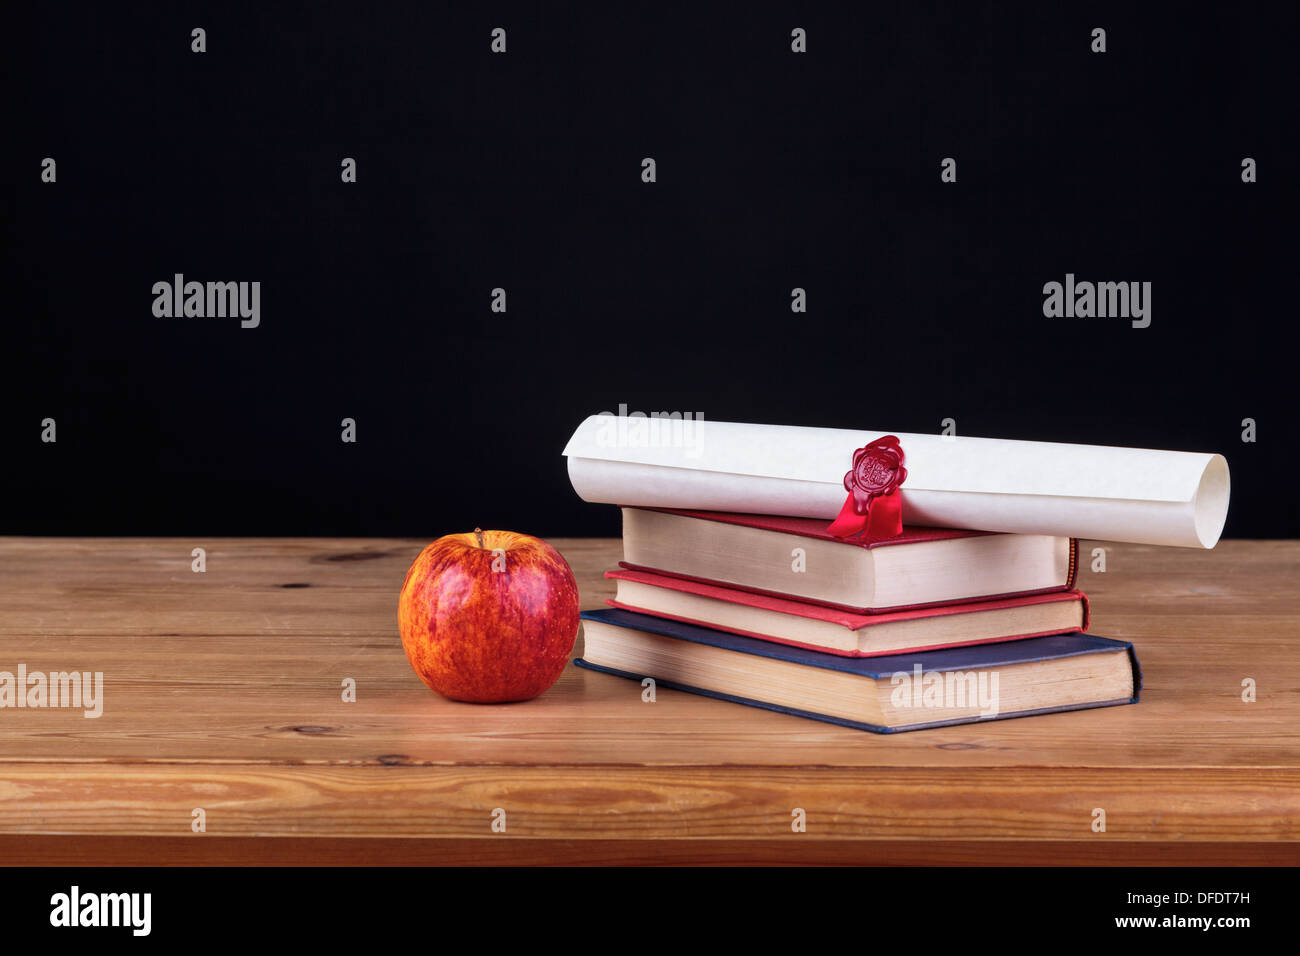 School desk with books and a diploma against a black background, add you own text. - Stock Image